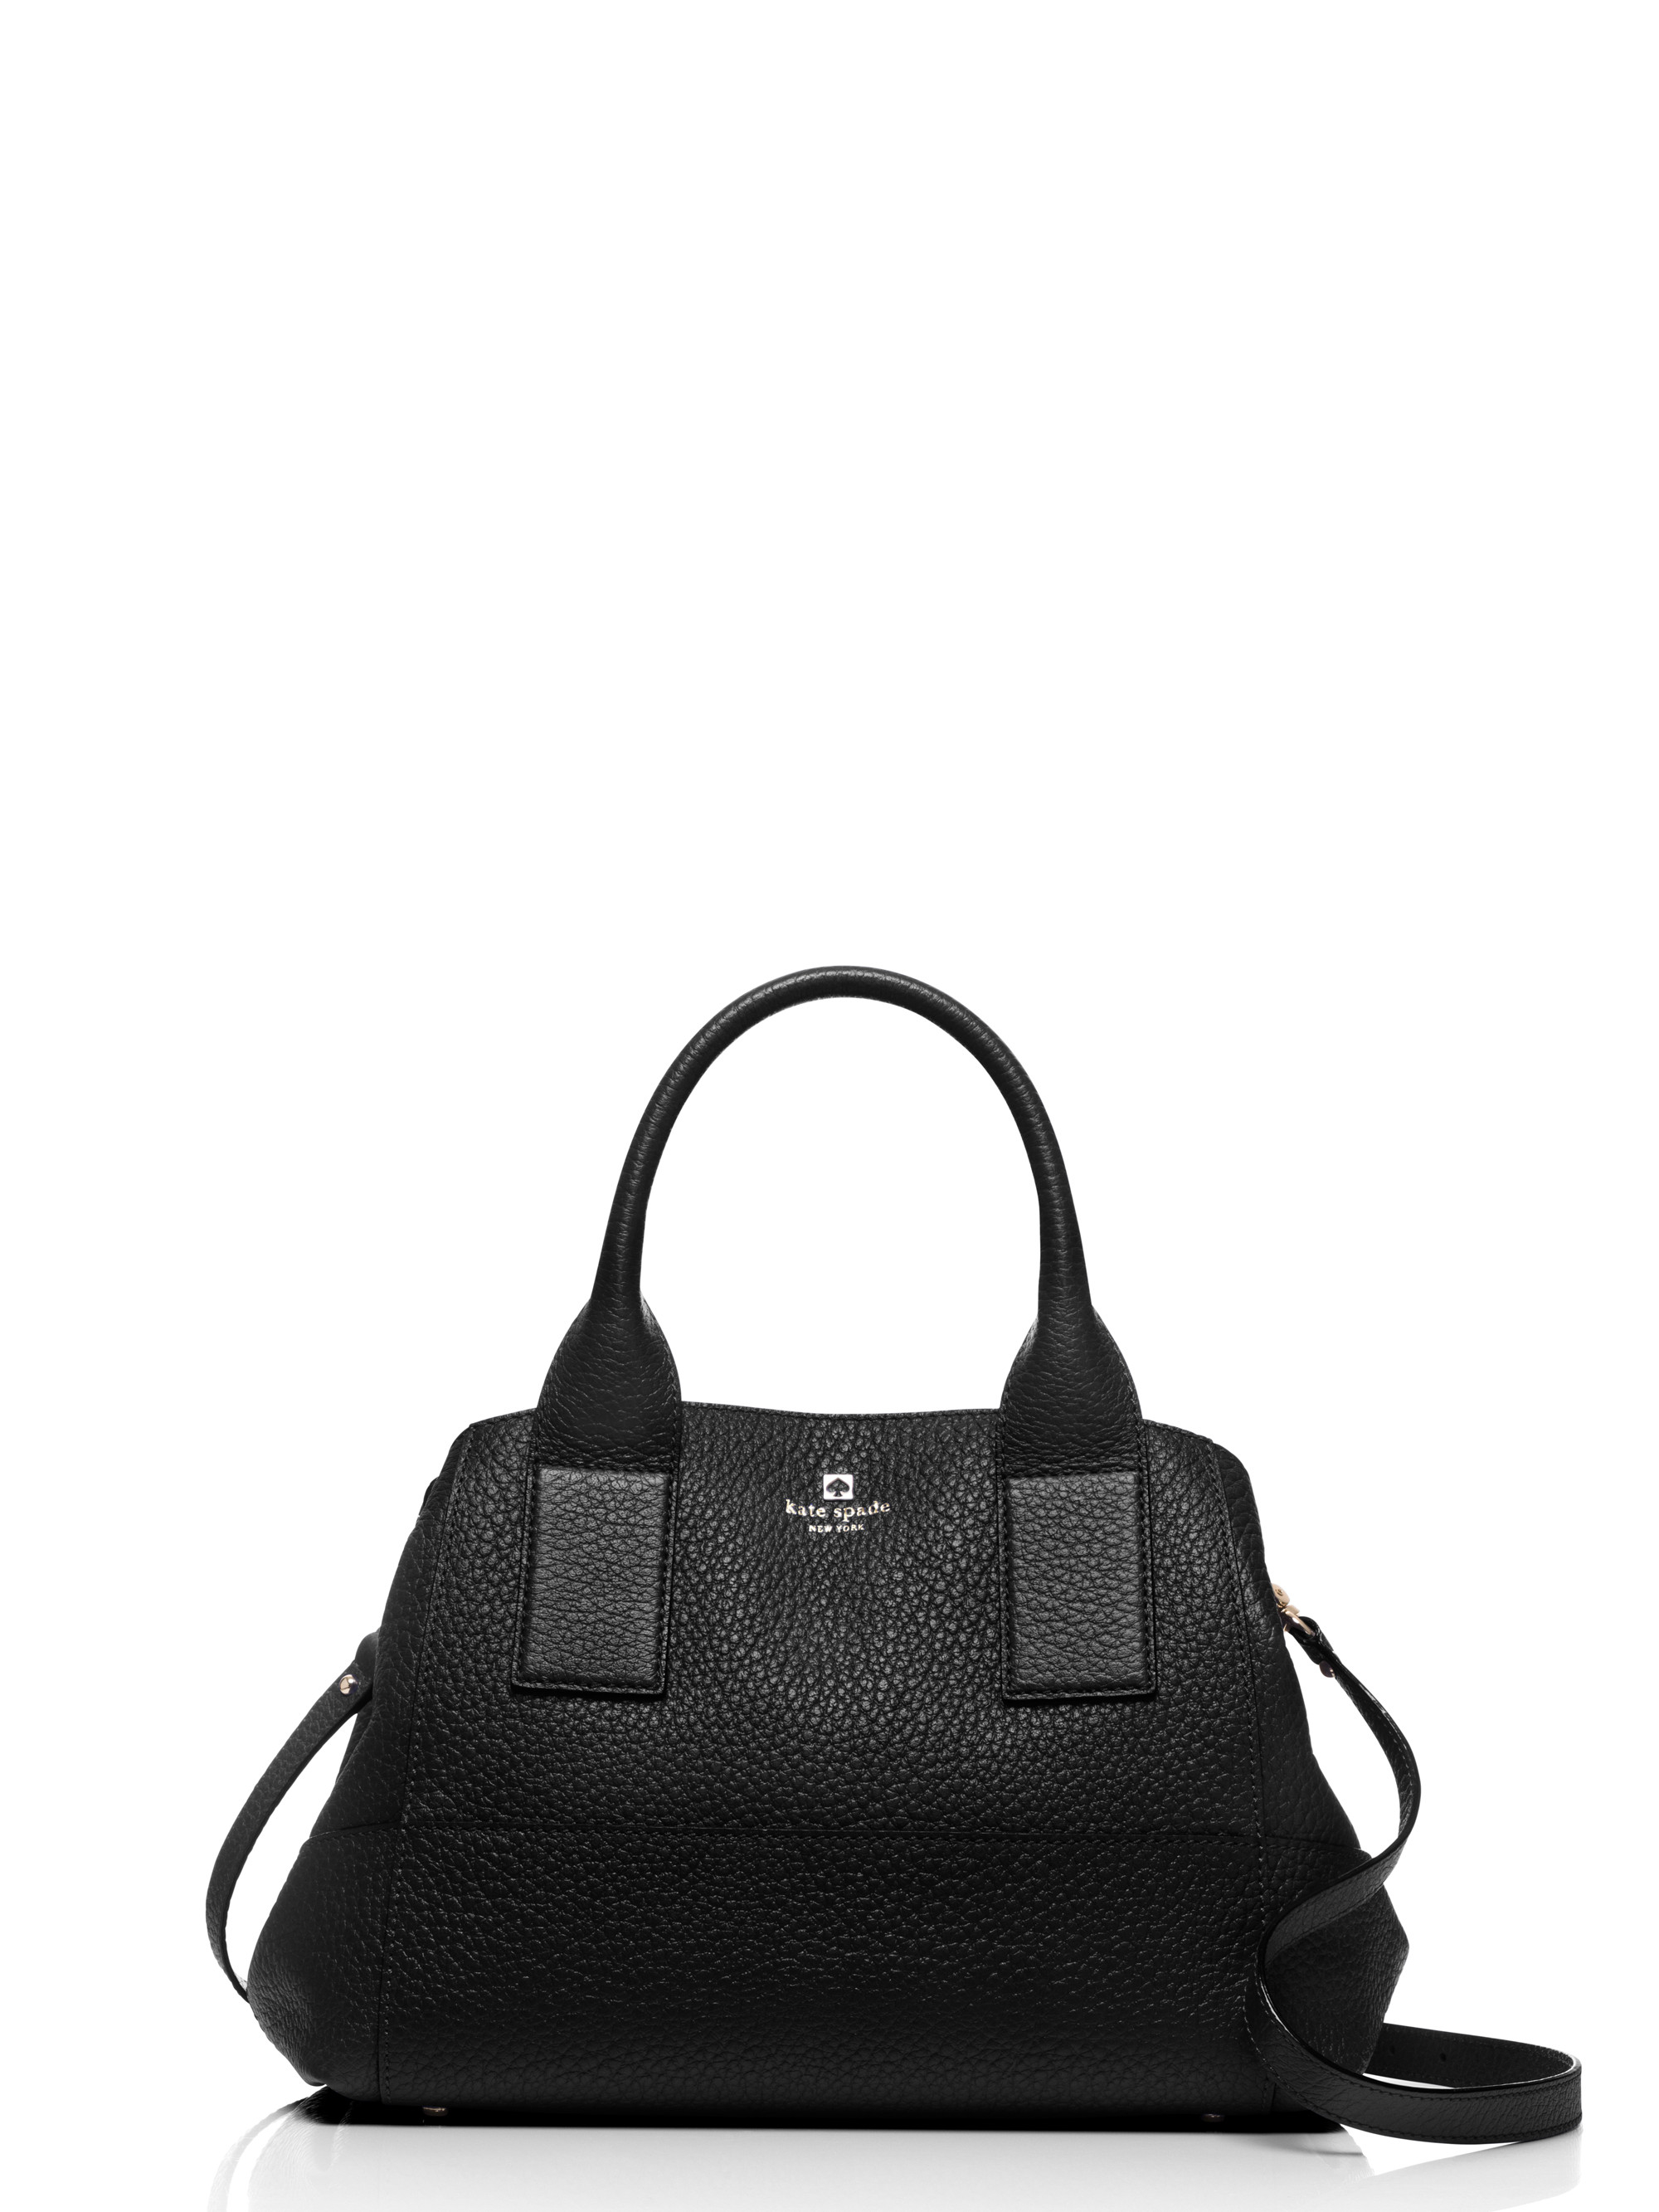 Kate Spade Southport Avenue Sloan Leather Tote In Black Lyst